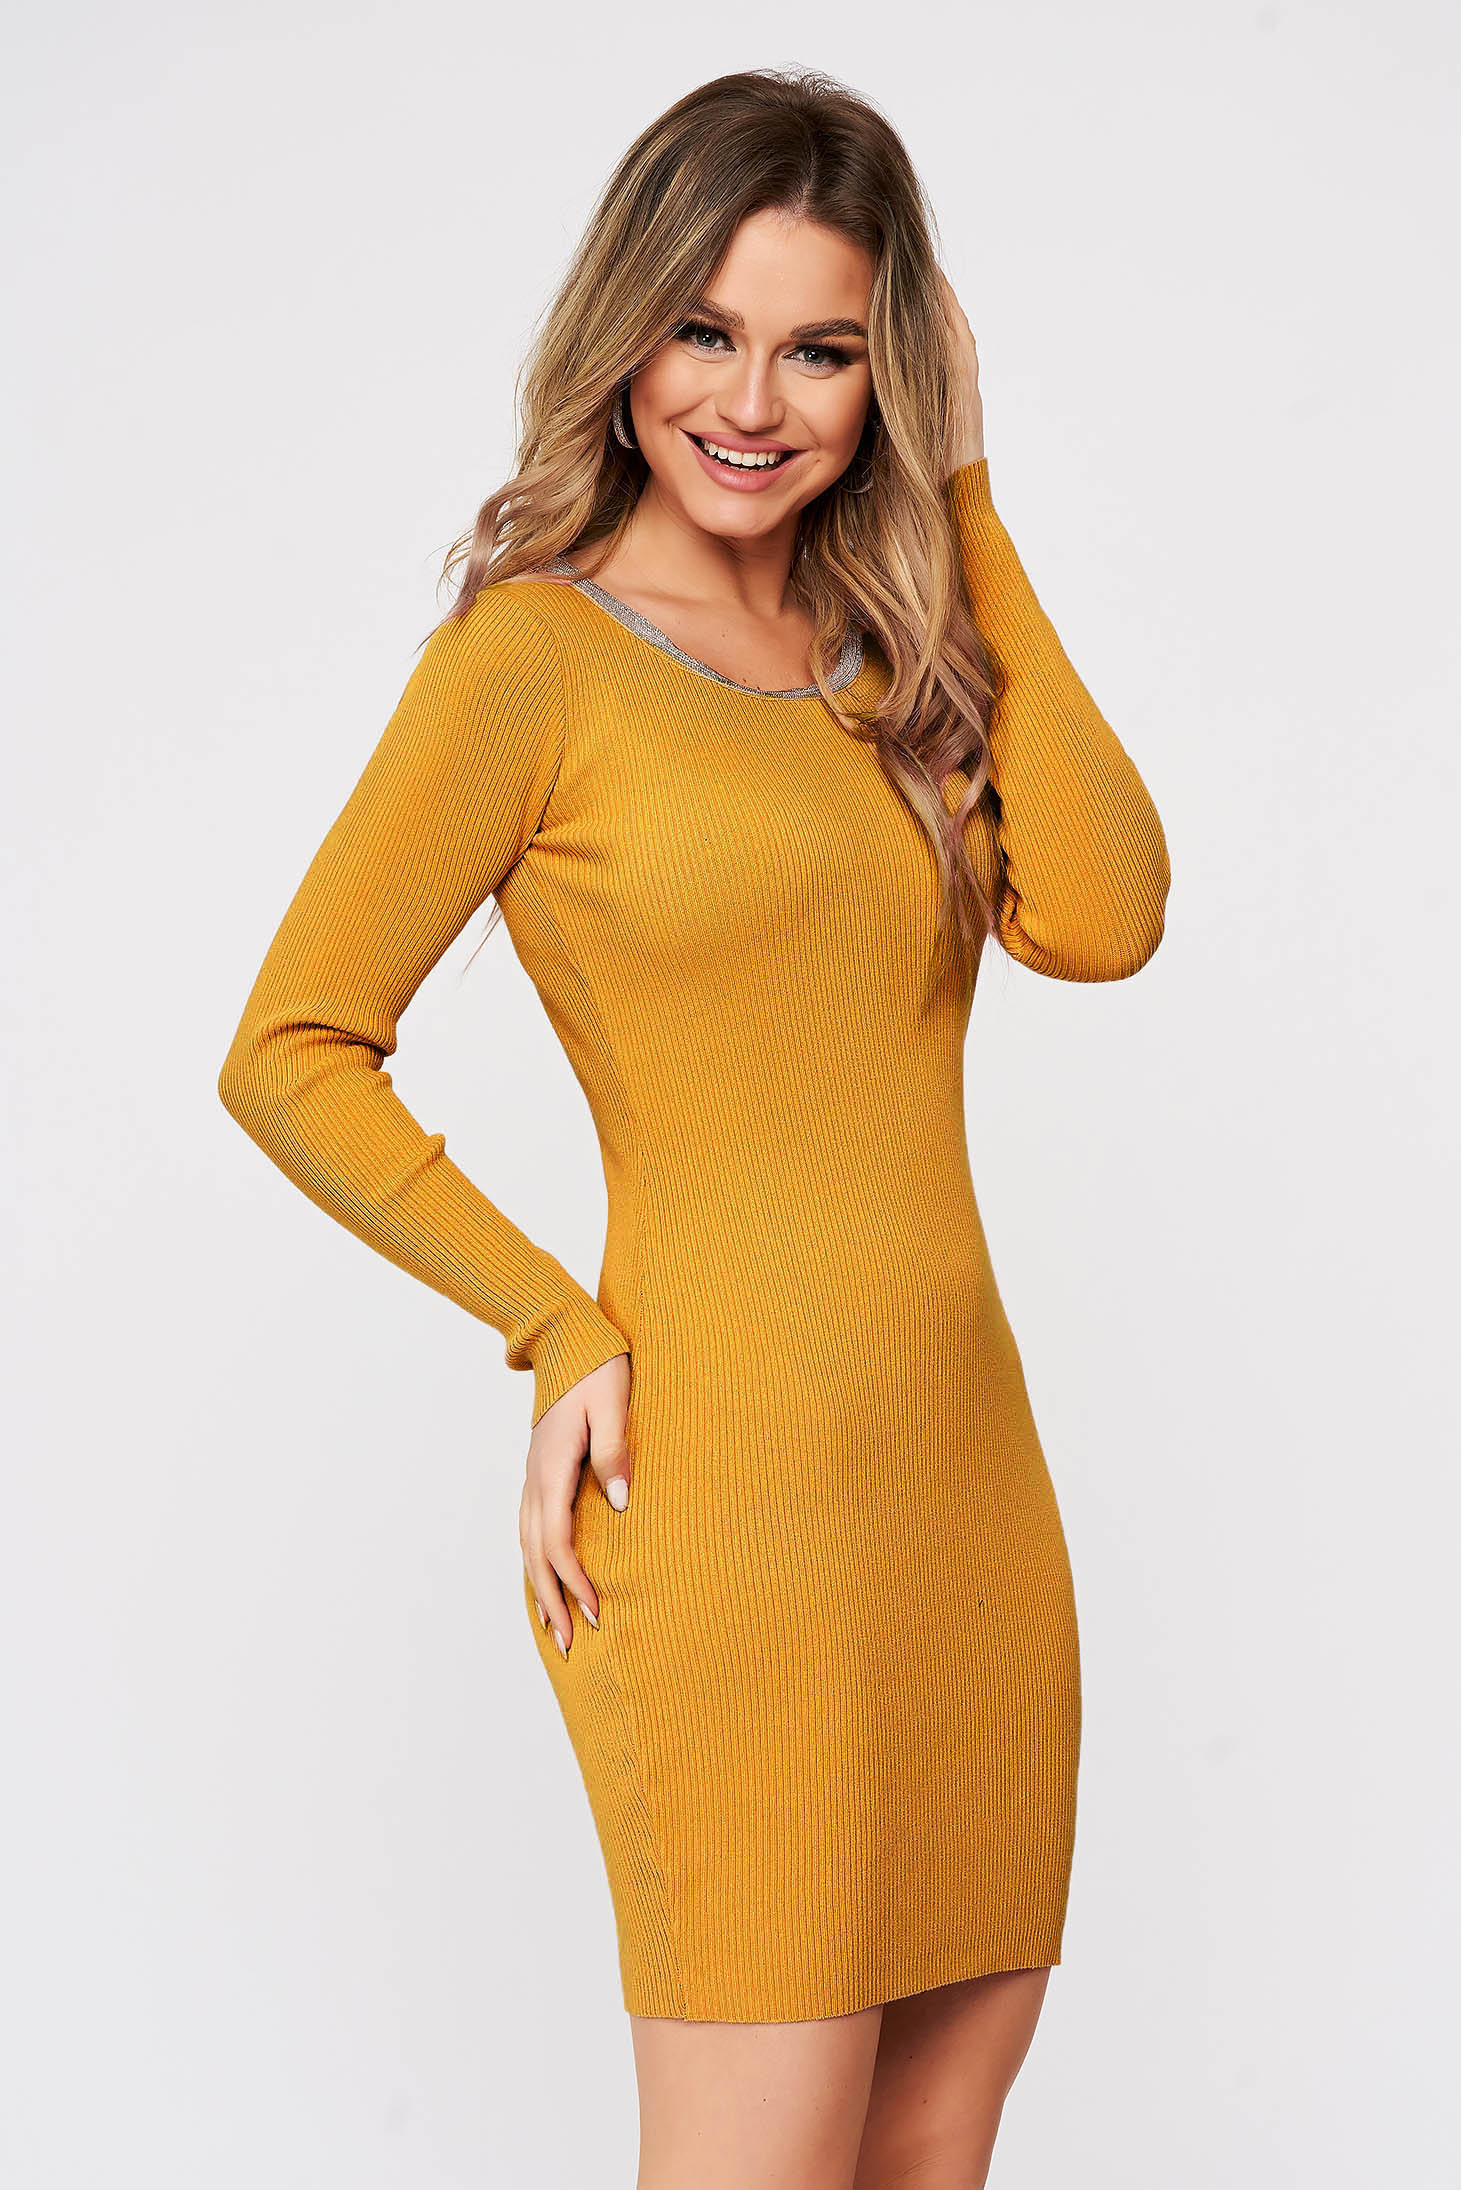 Mustard dress from elastic fabric from striped fabric knitted with metal accessories neckline